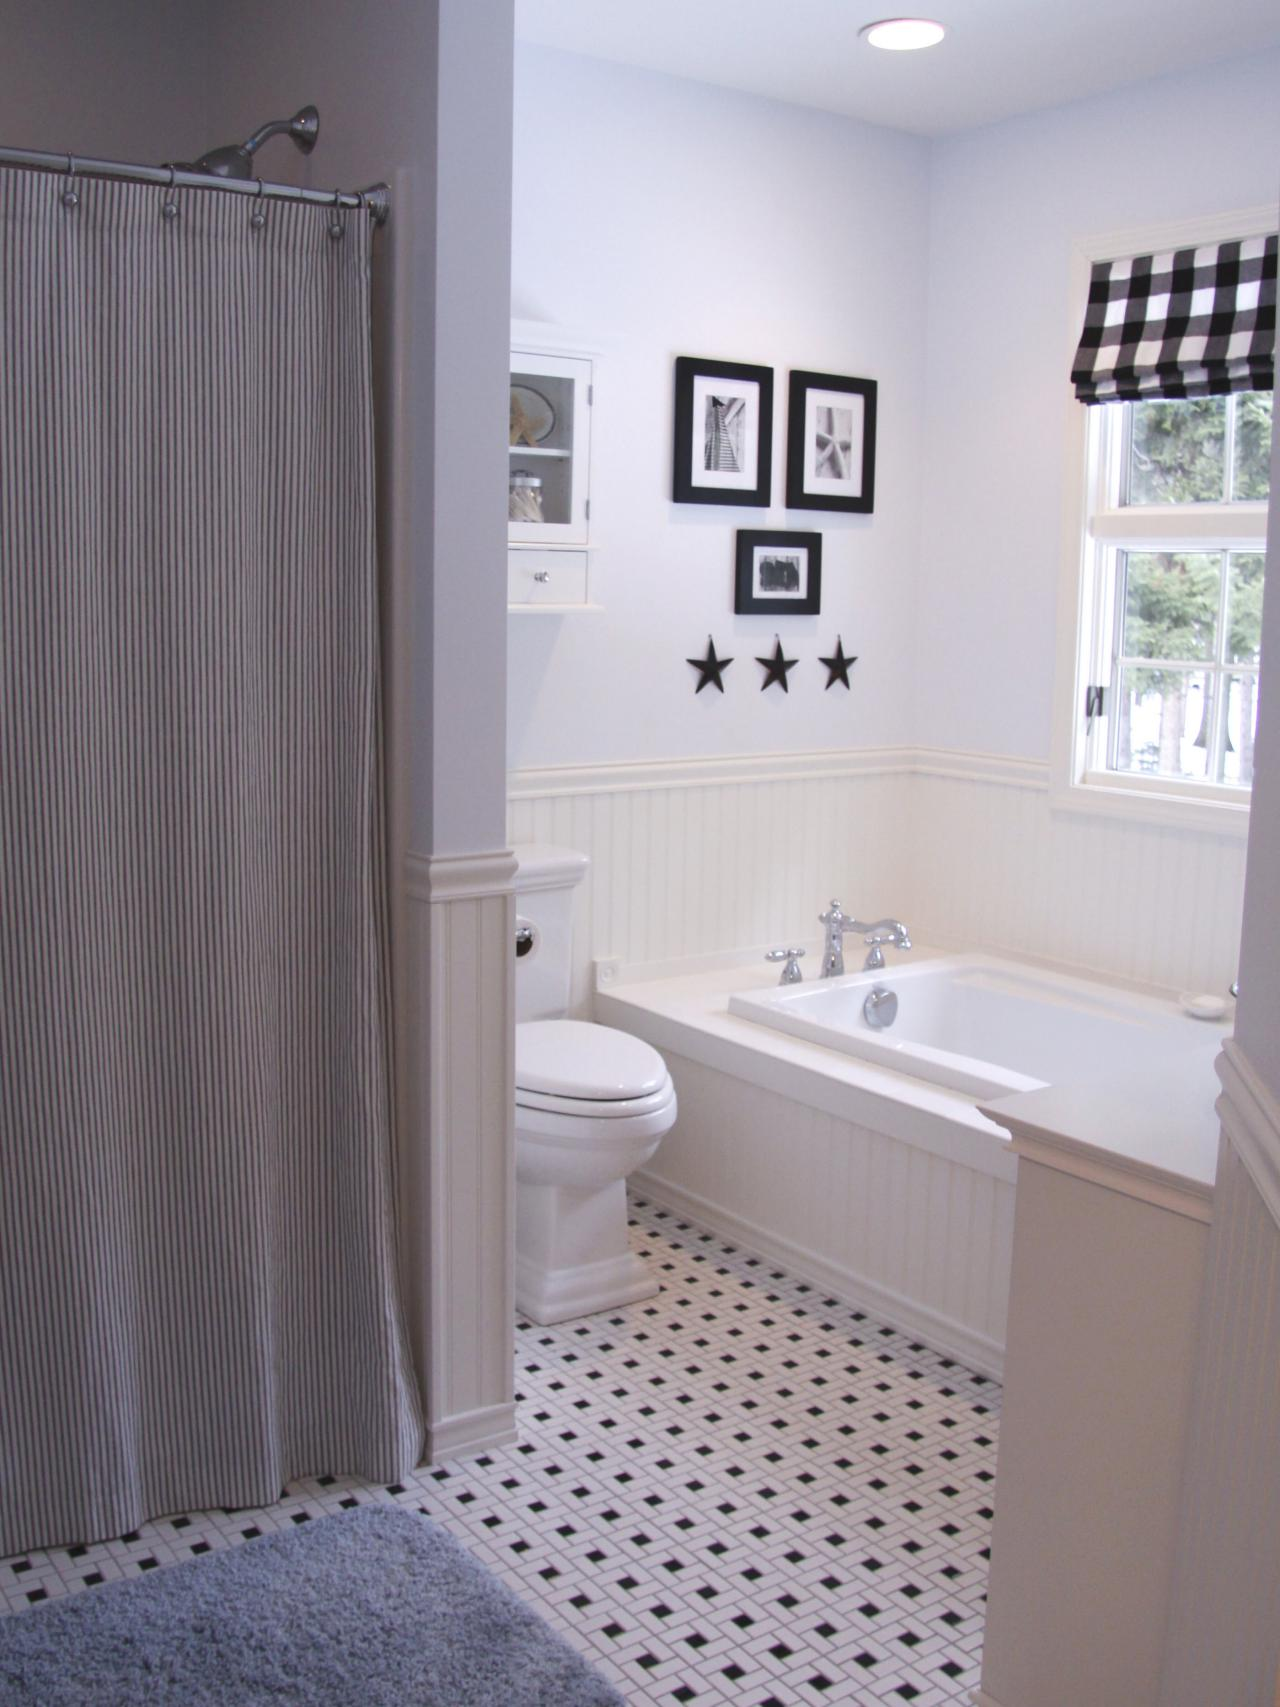 RMS_barbara61-black-white-country-style-bathroom_s3x4.jpg.rend.hgtvcom.1280.1707